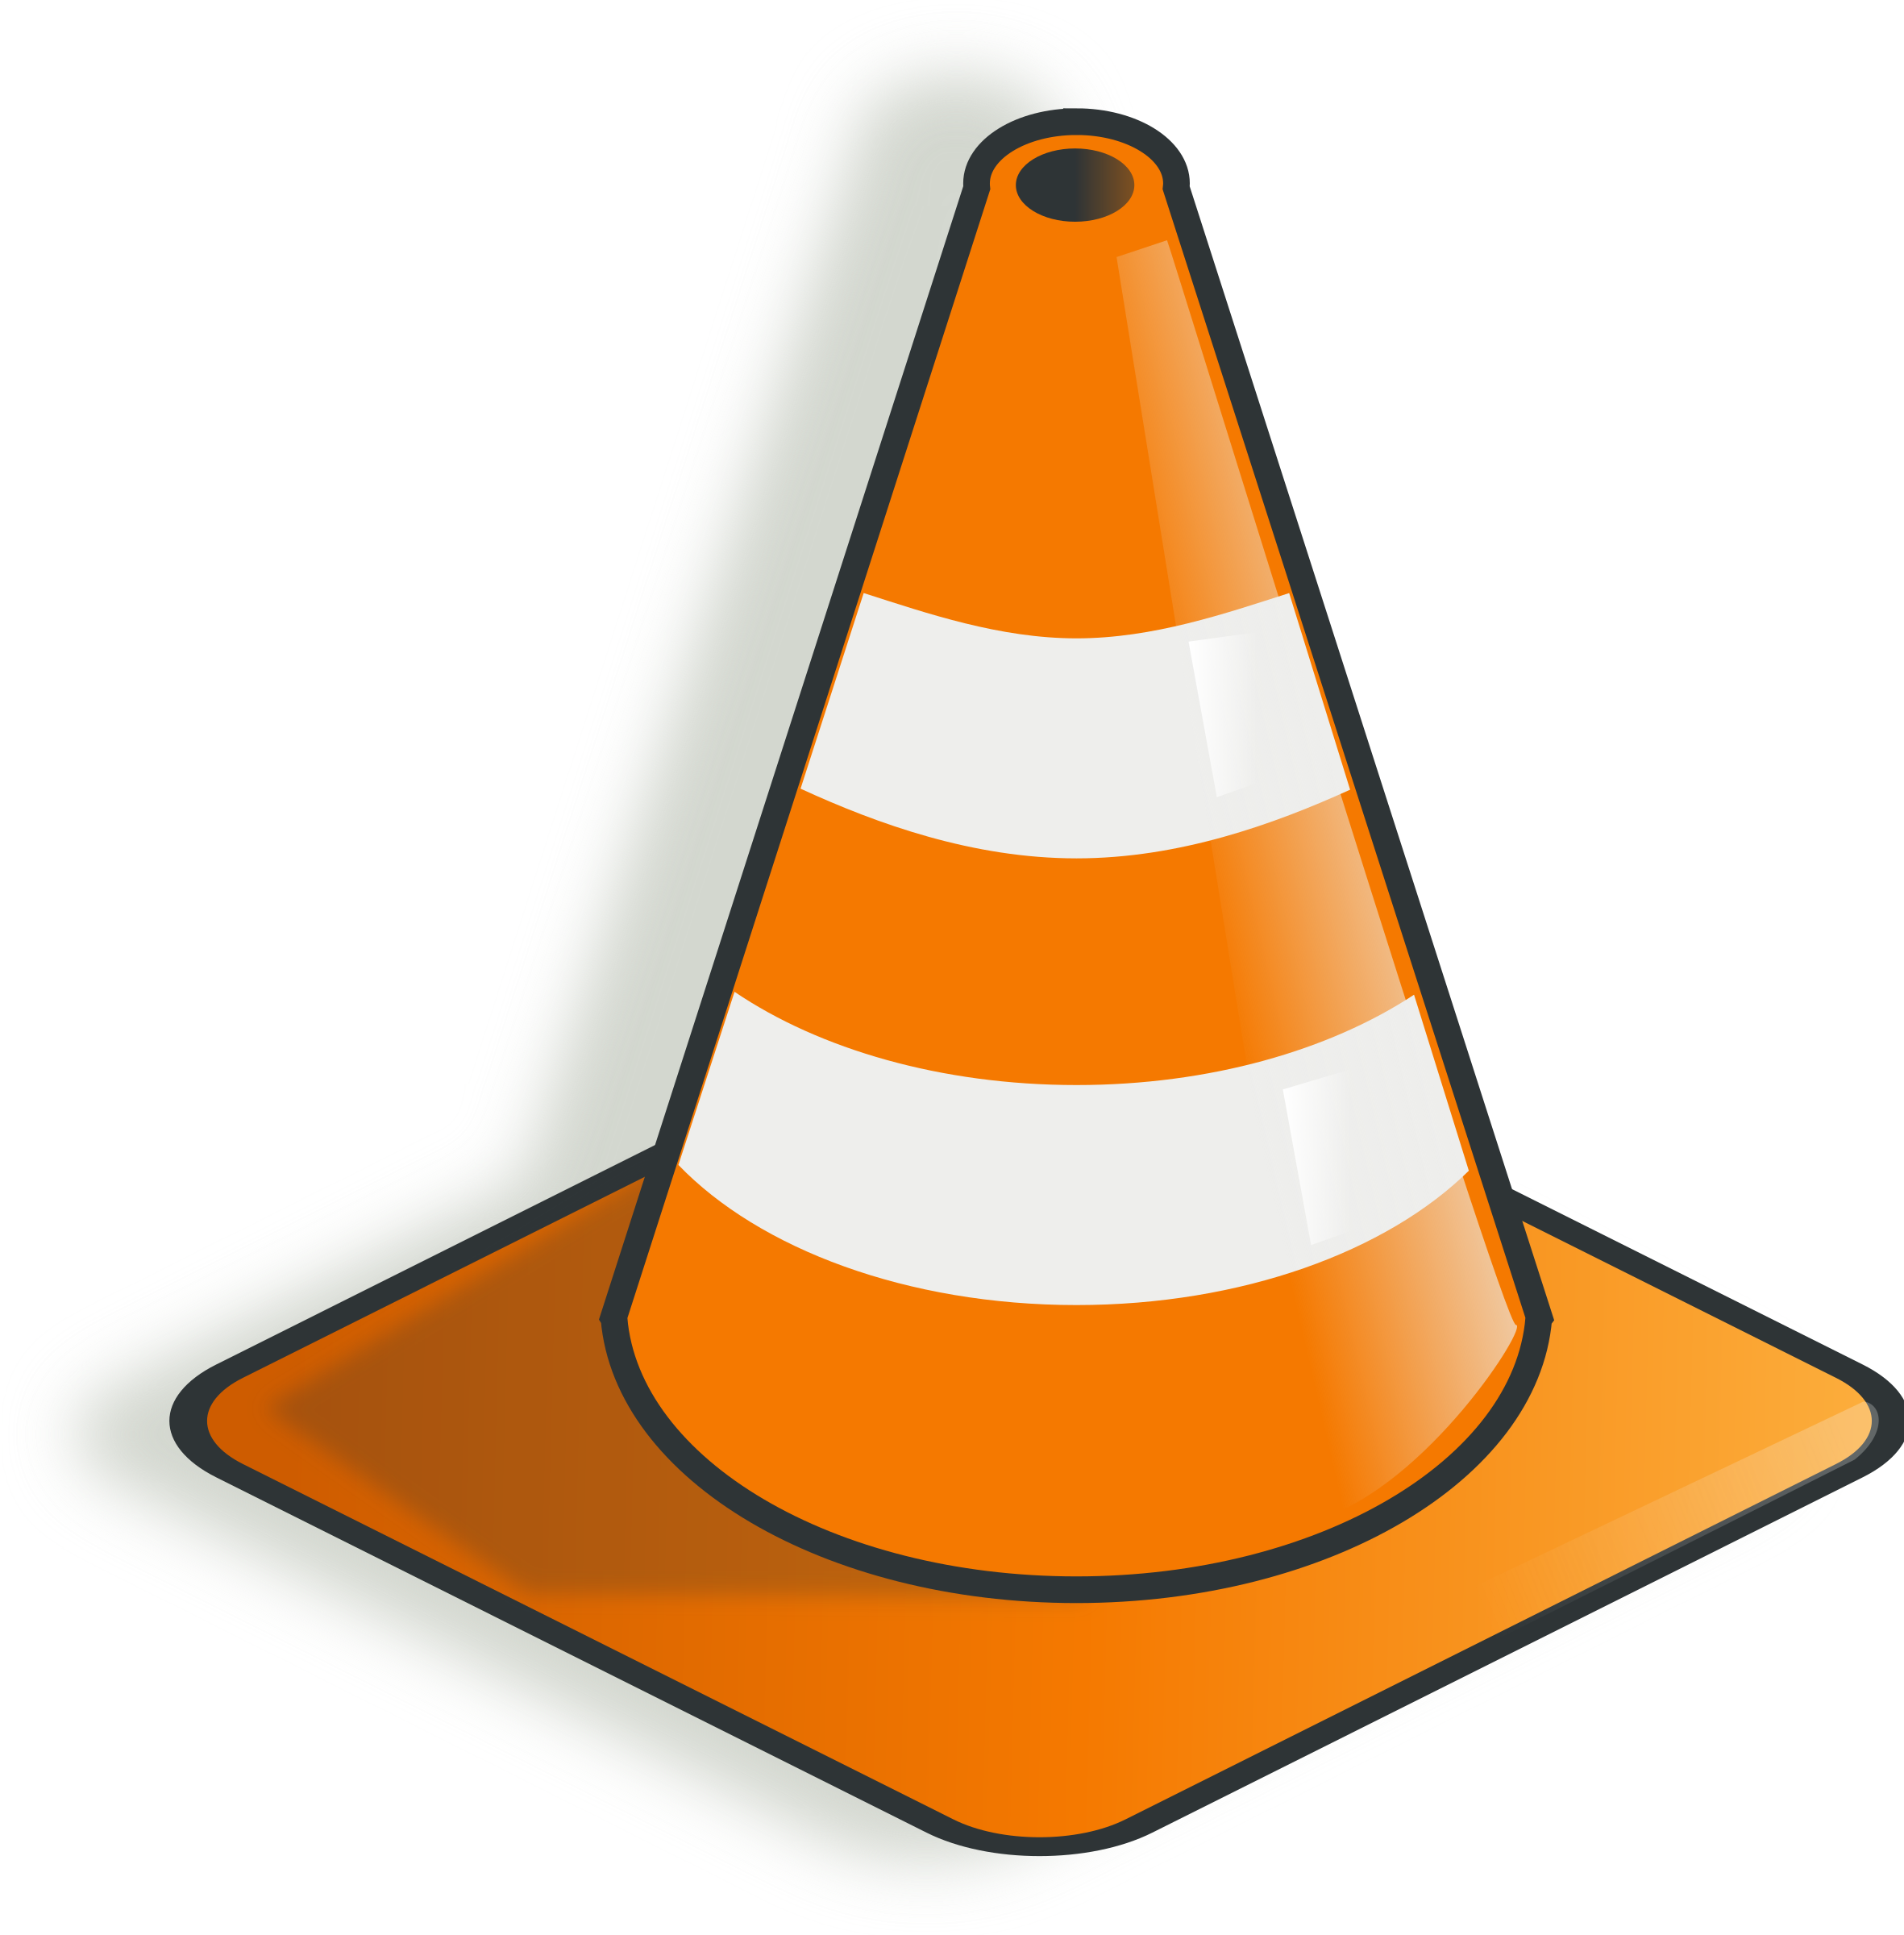 construction cone by rg1024